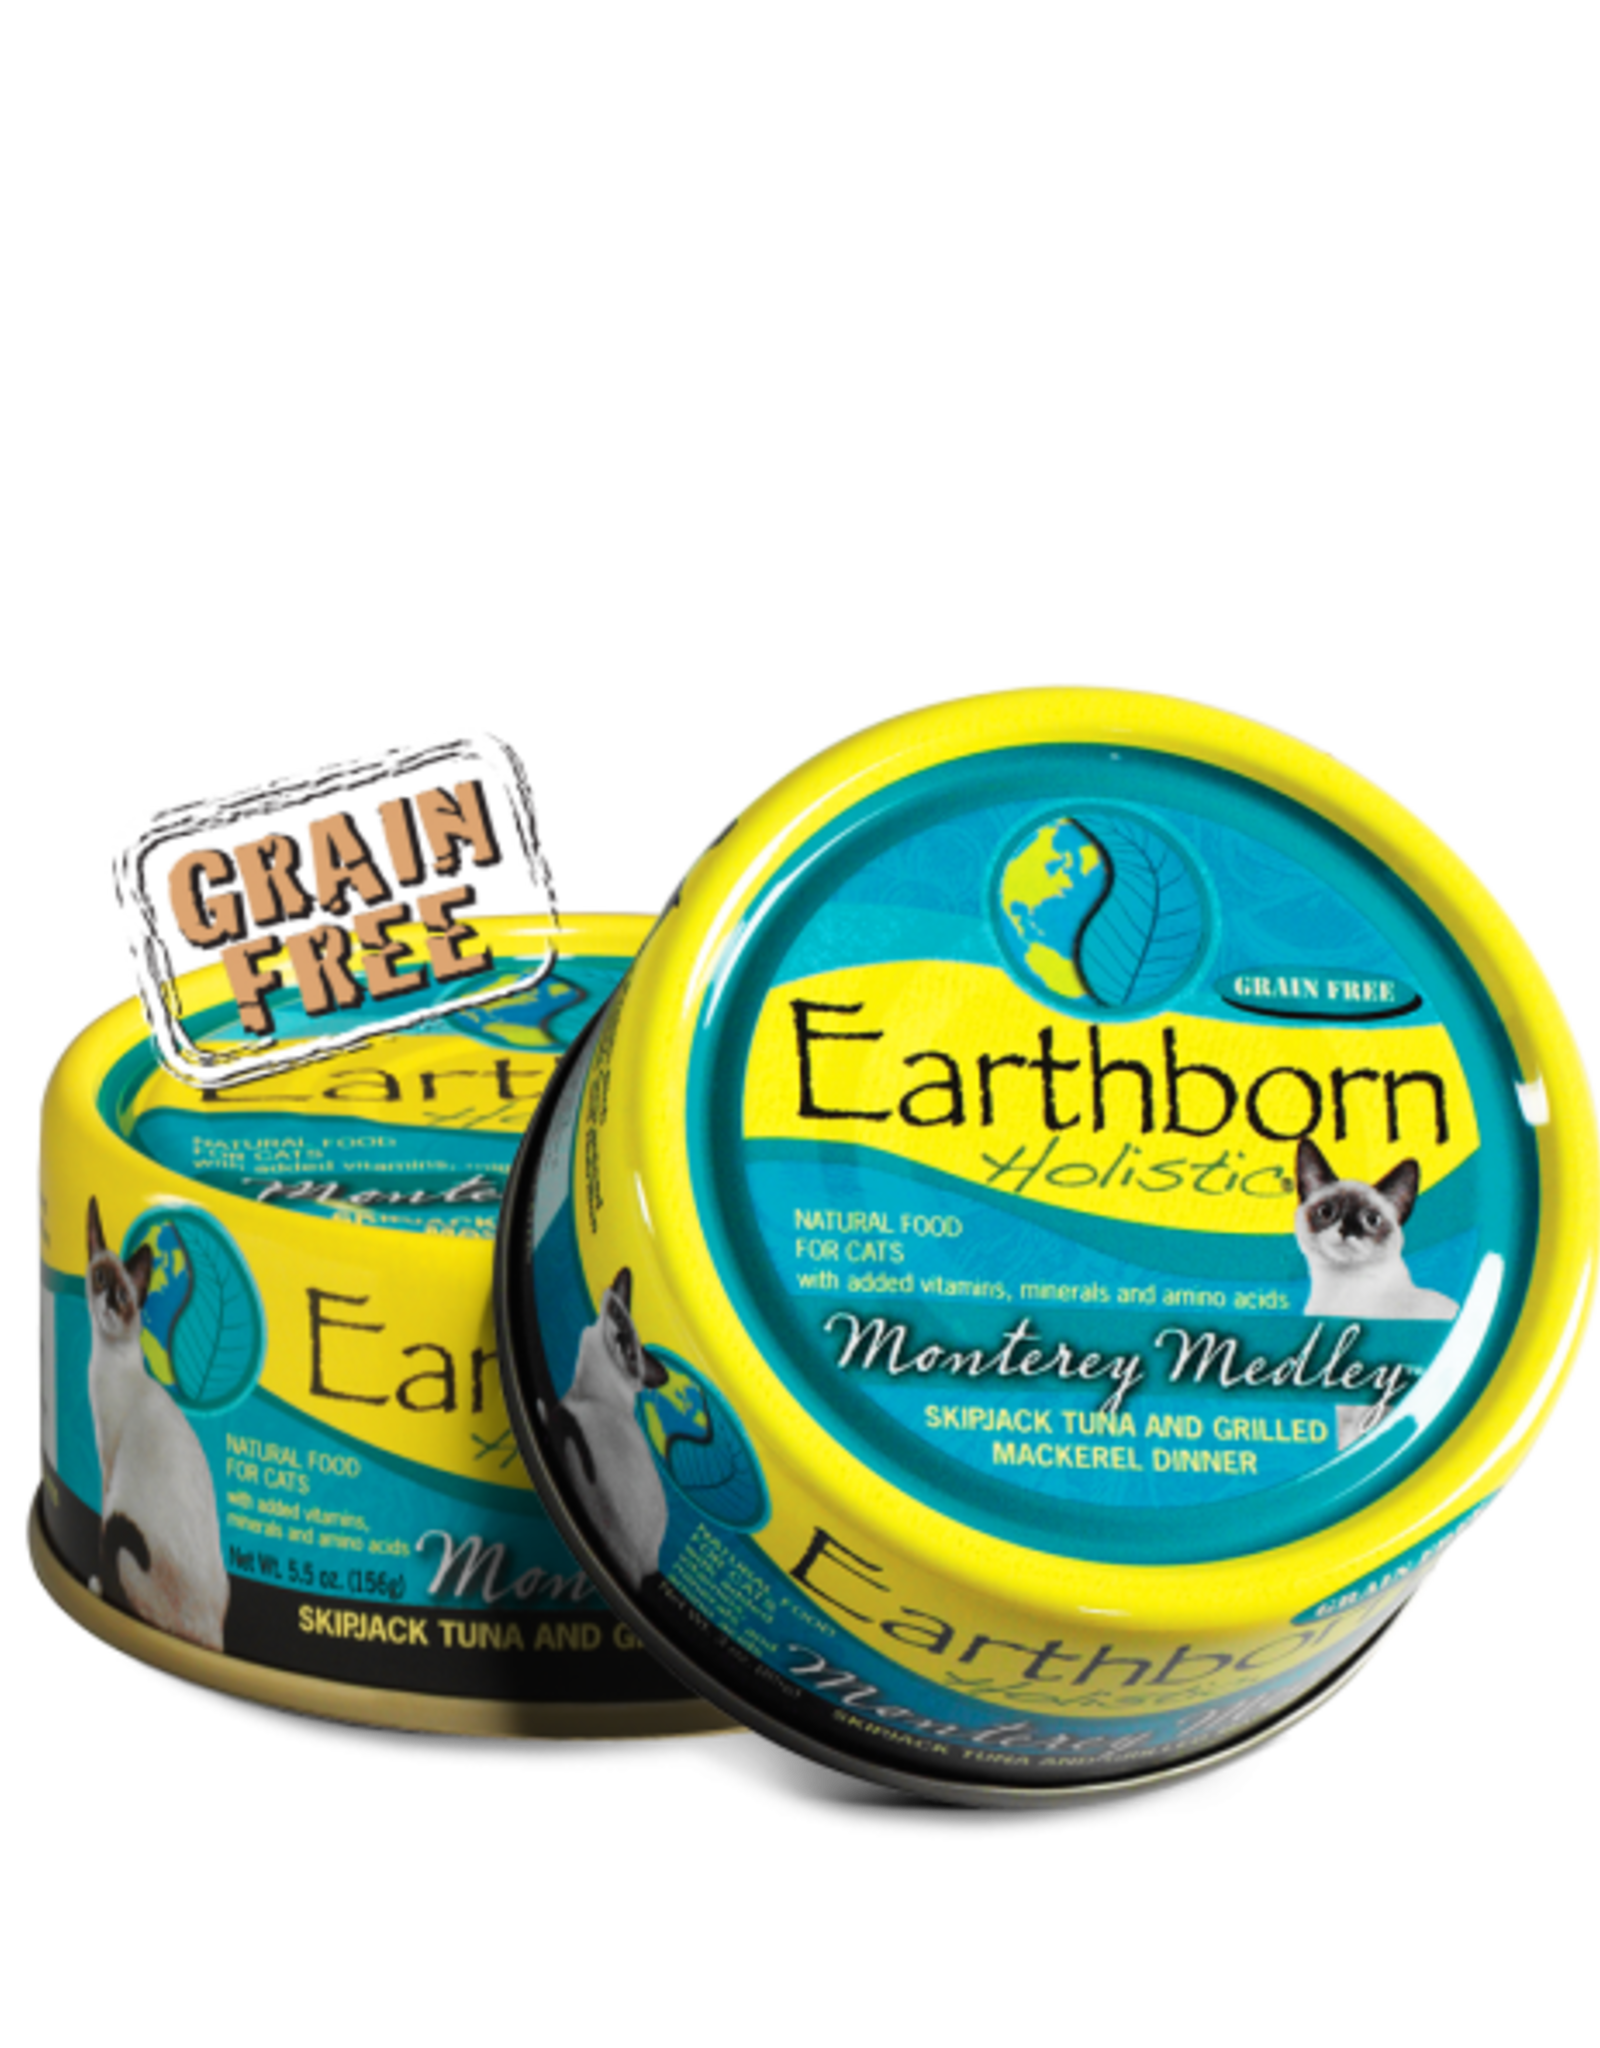 EARTHBORN EARTHBORN HOLISTIC CAT MONTEREY MEDLEY CAN 3OZ CASE OF 24